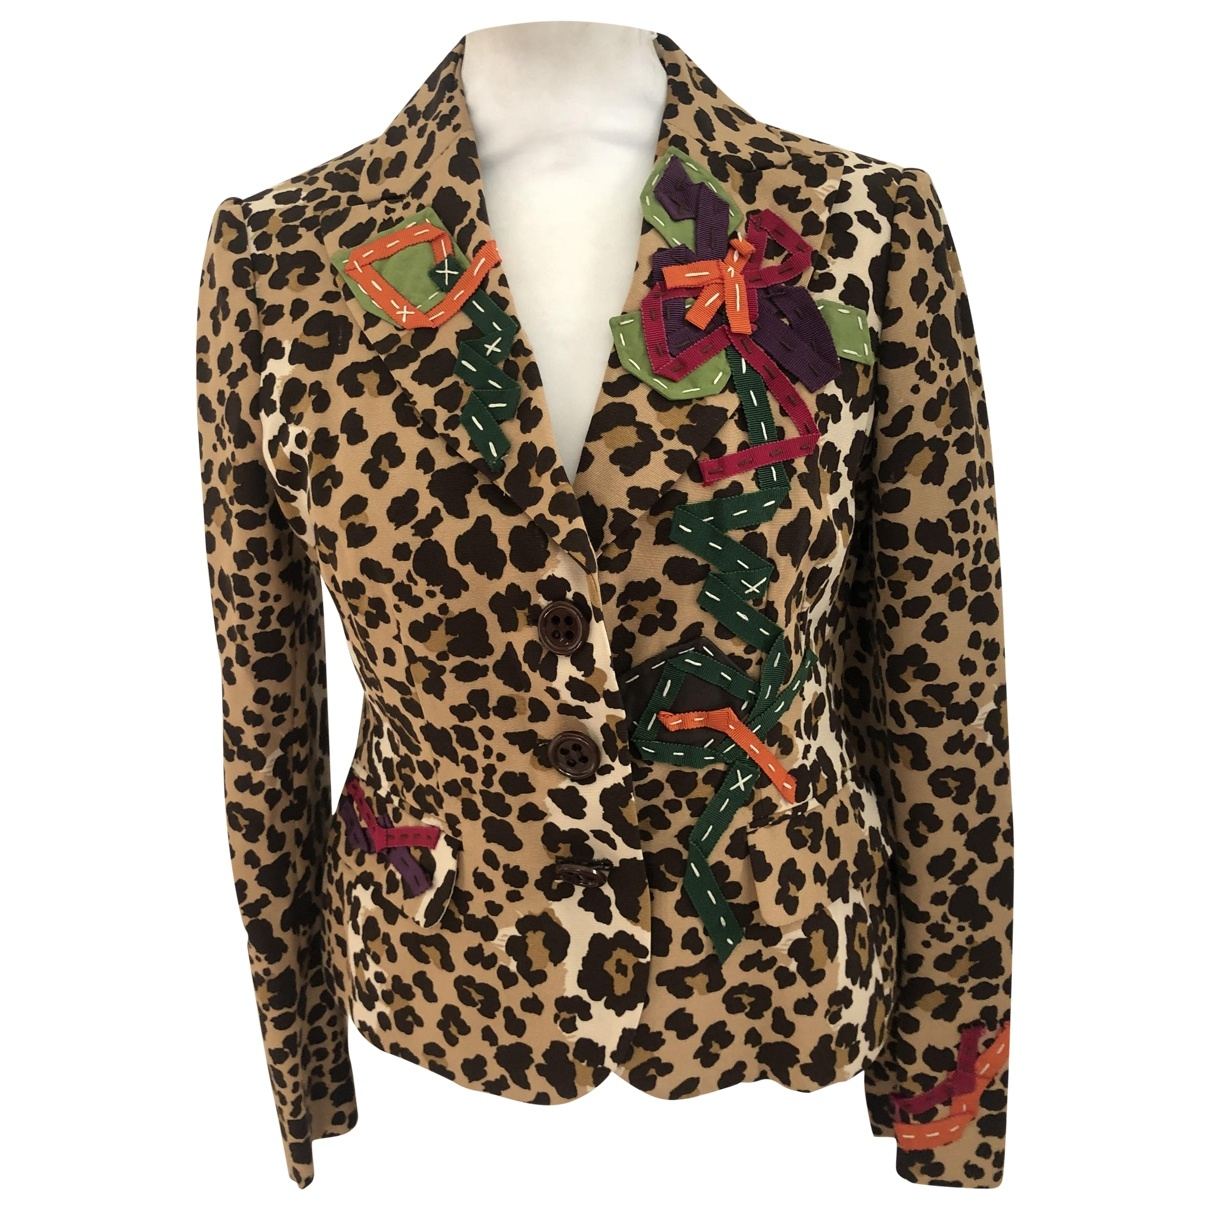 Moschino Cheap And Chic \N Jacke in Baumwolle